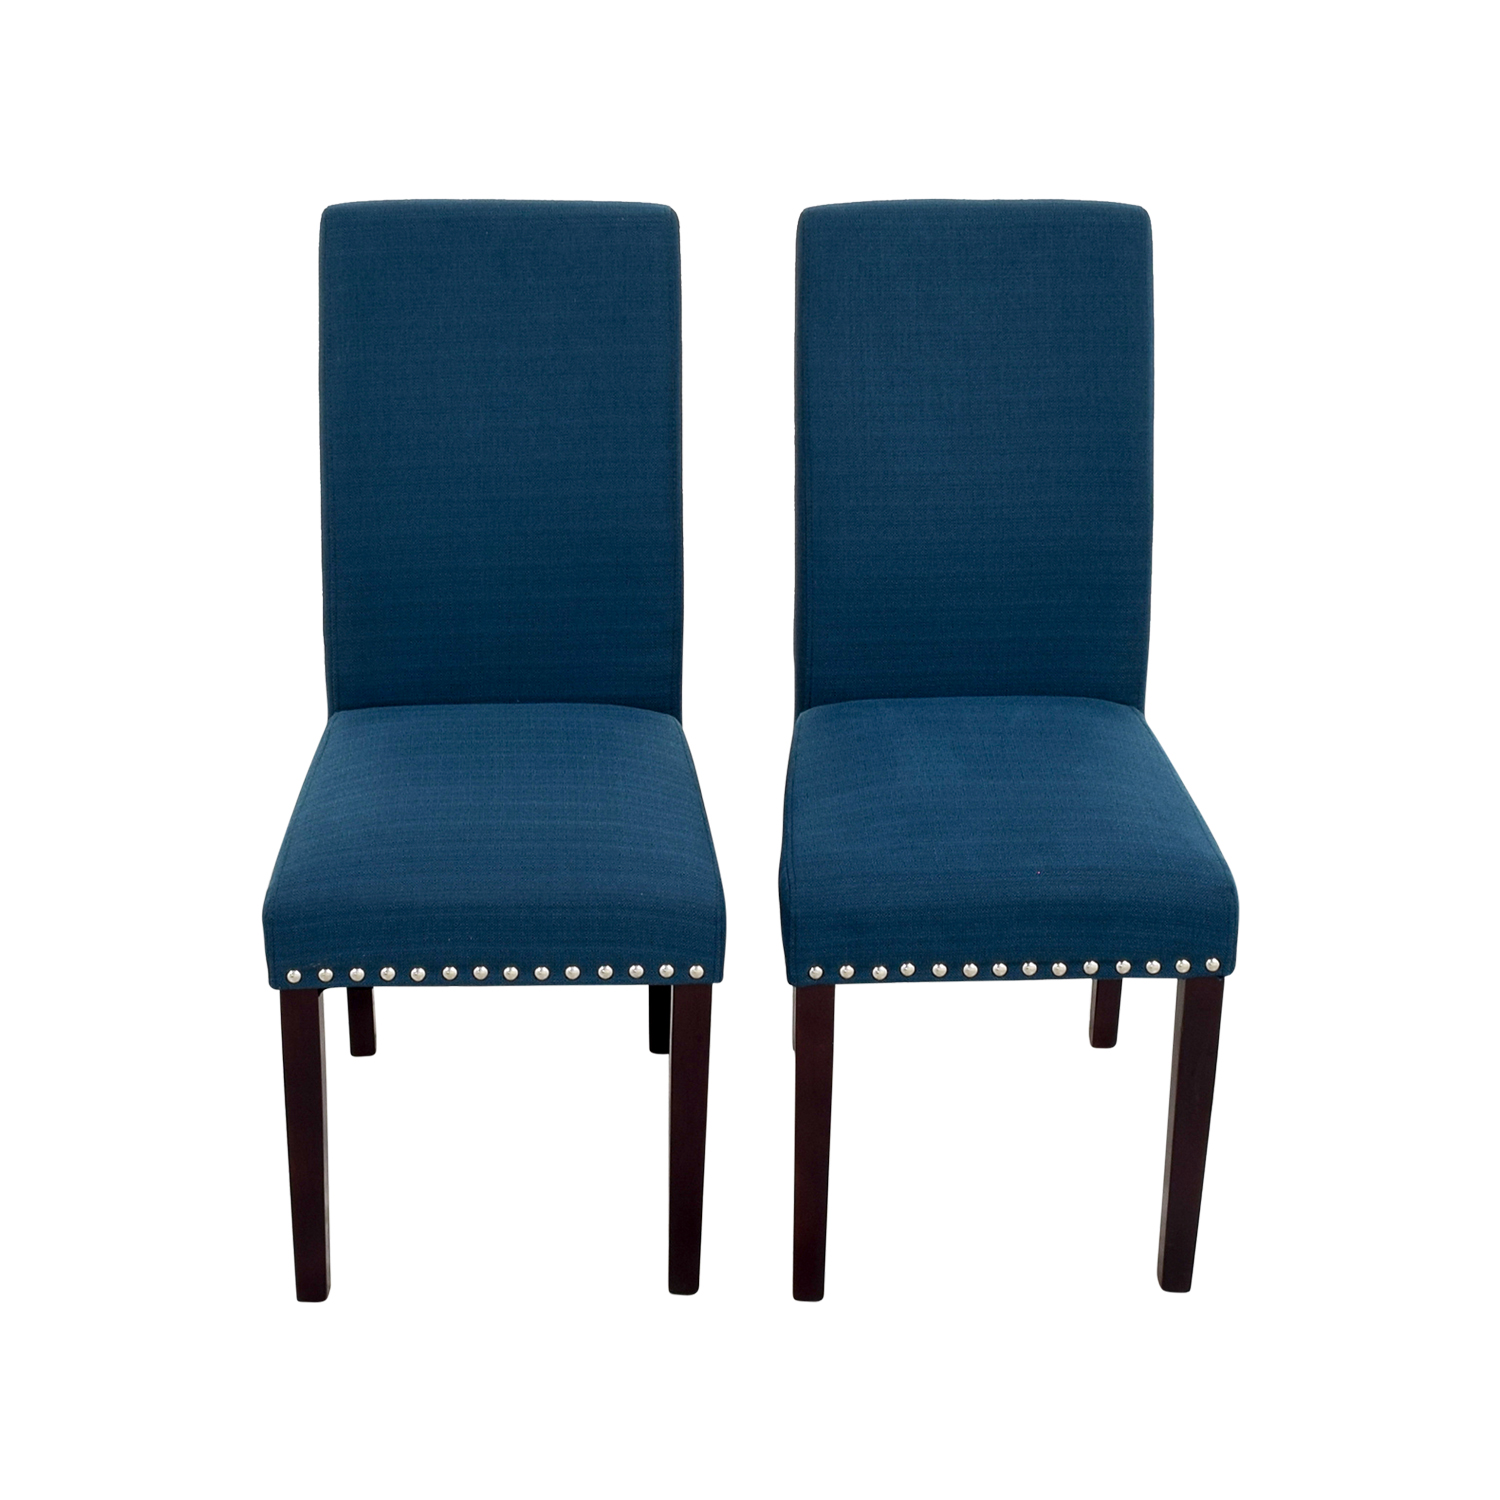 56% OFF Modway Modway Madrid Nail Head Teal Dining Chairs Chairs